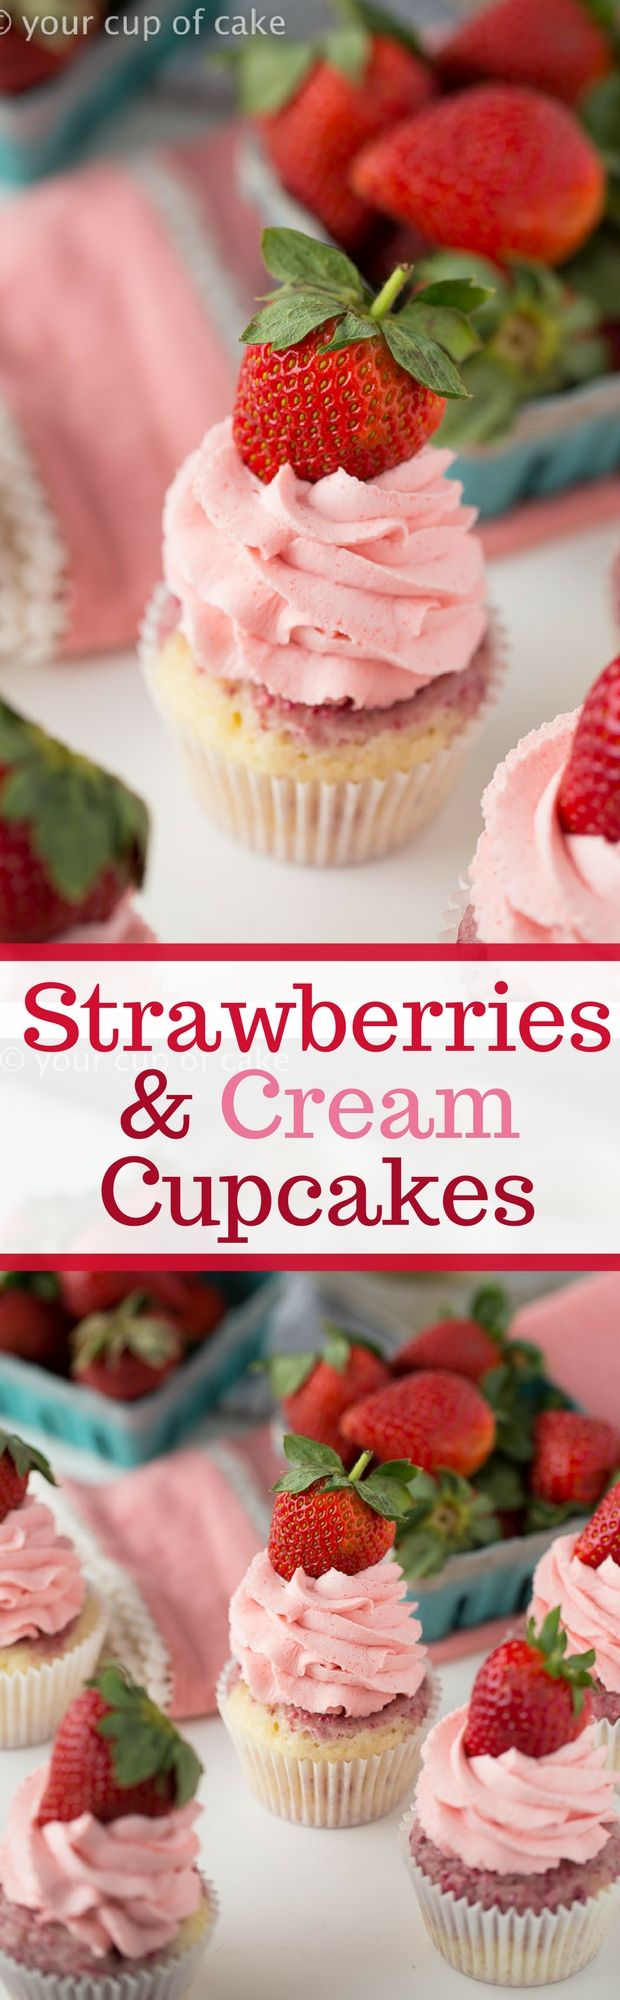 Strawberries and Cream Cupcakes, SO cute and pink! Love these for bridal showers to Valentine's Day